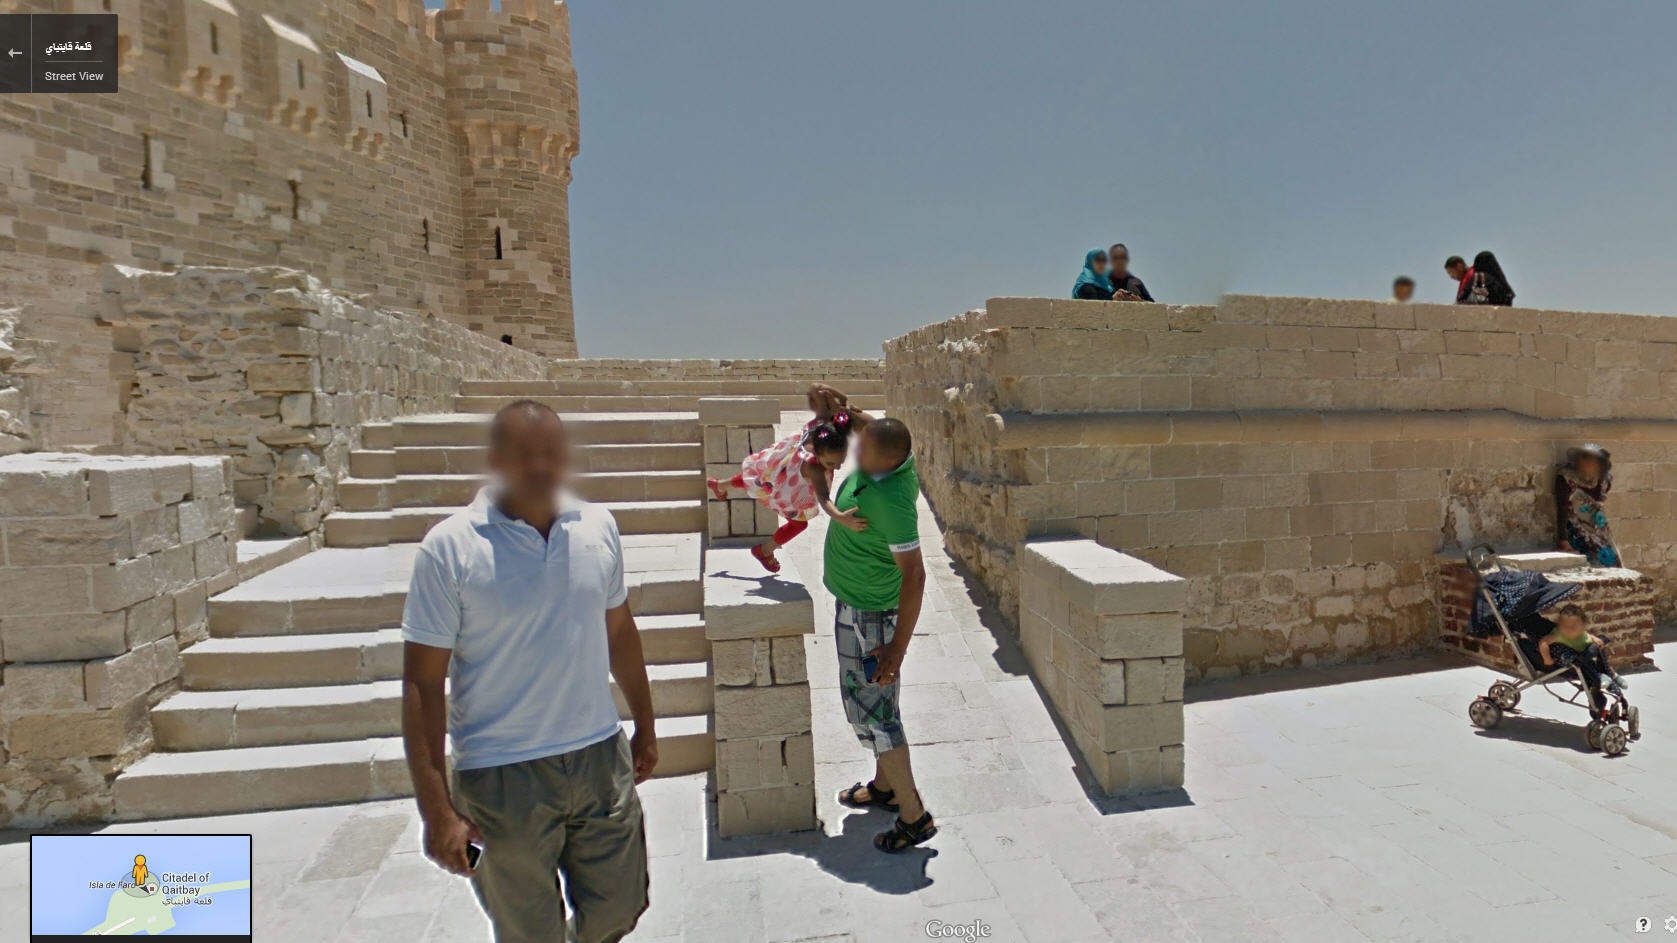 Google Street View Wgypt Now Live Google Street View World